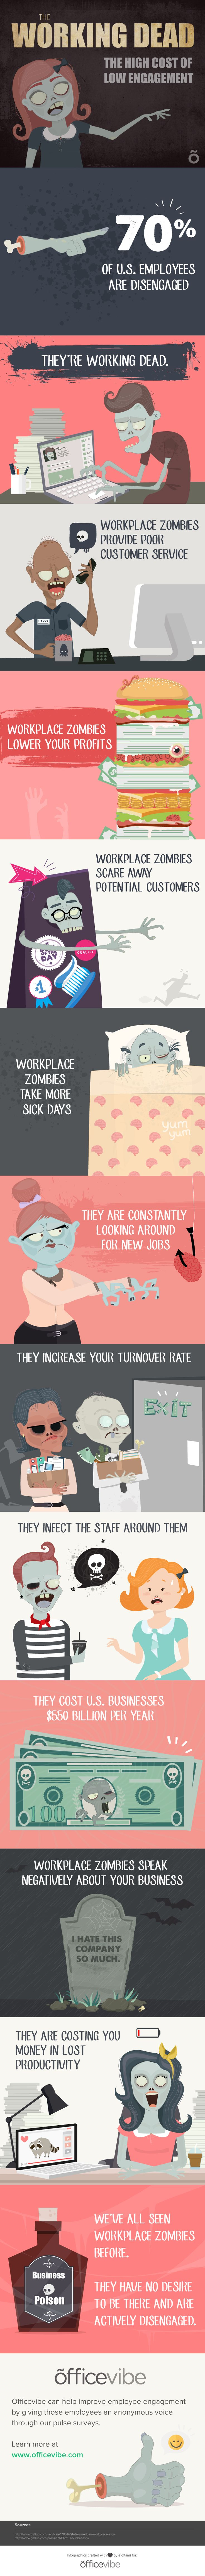 How Poor Management Creates Zombie Employees (Infographic)